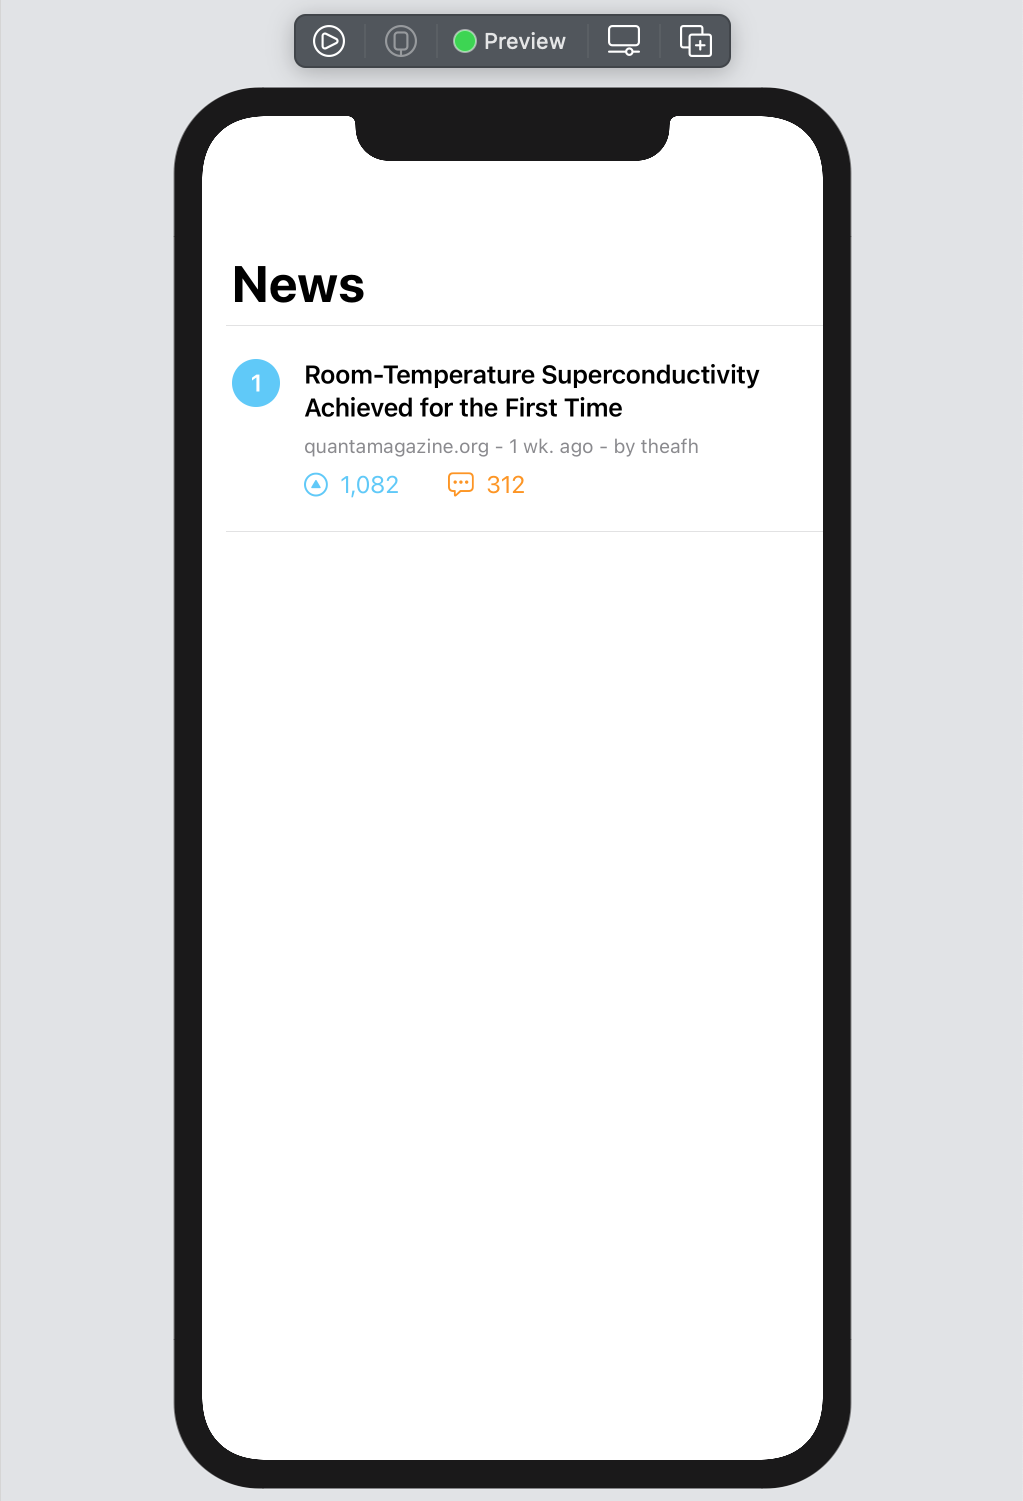 Xcode preview for the complete News view